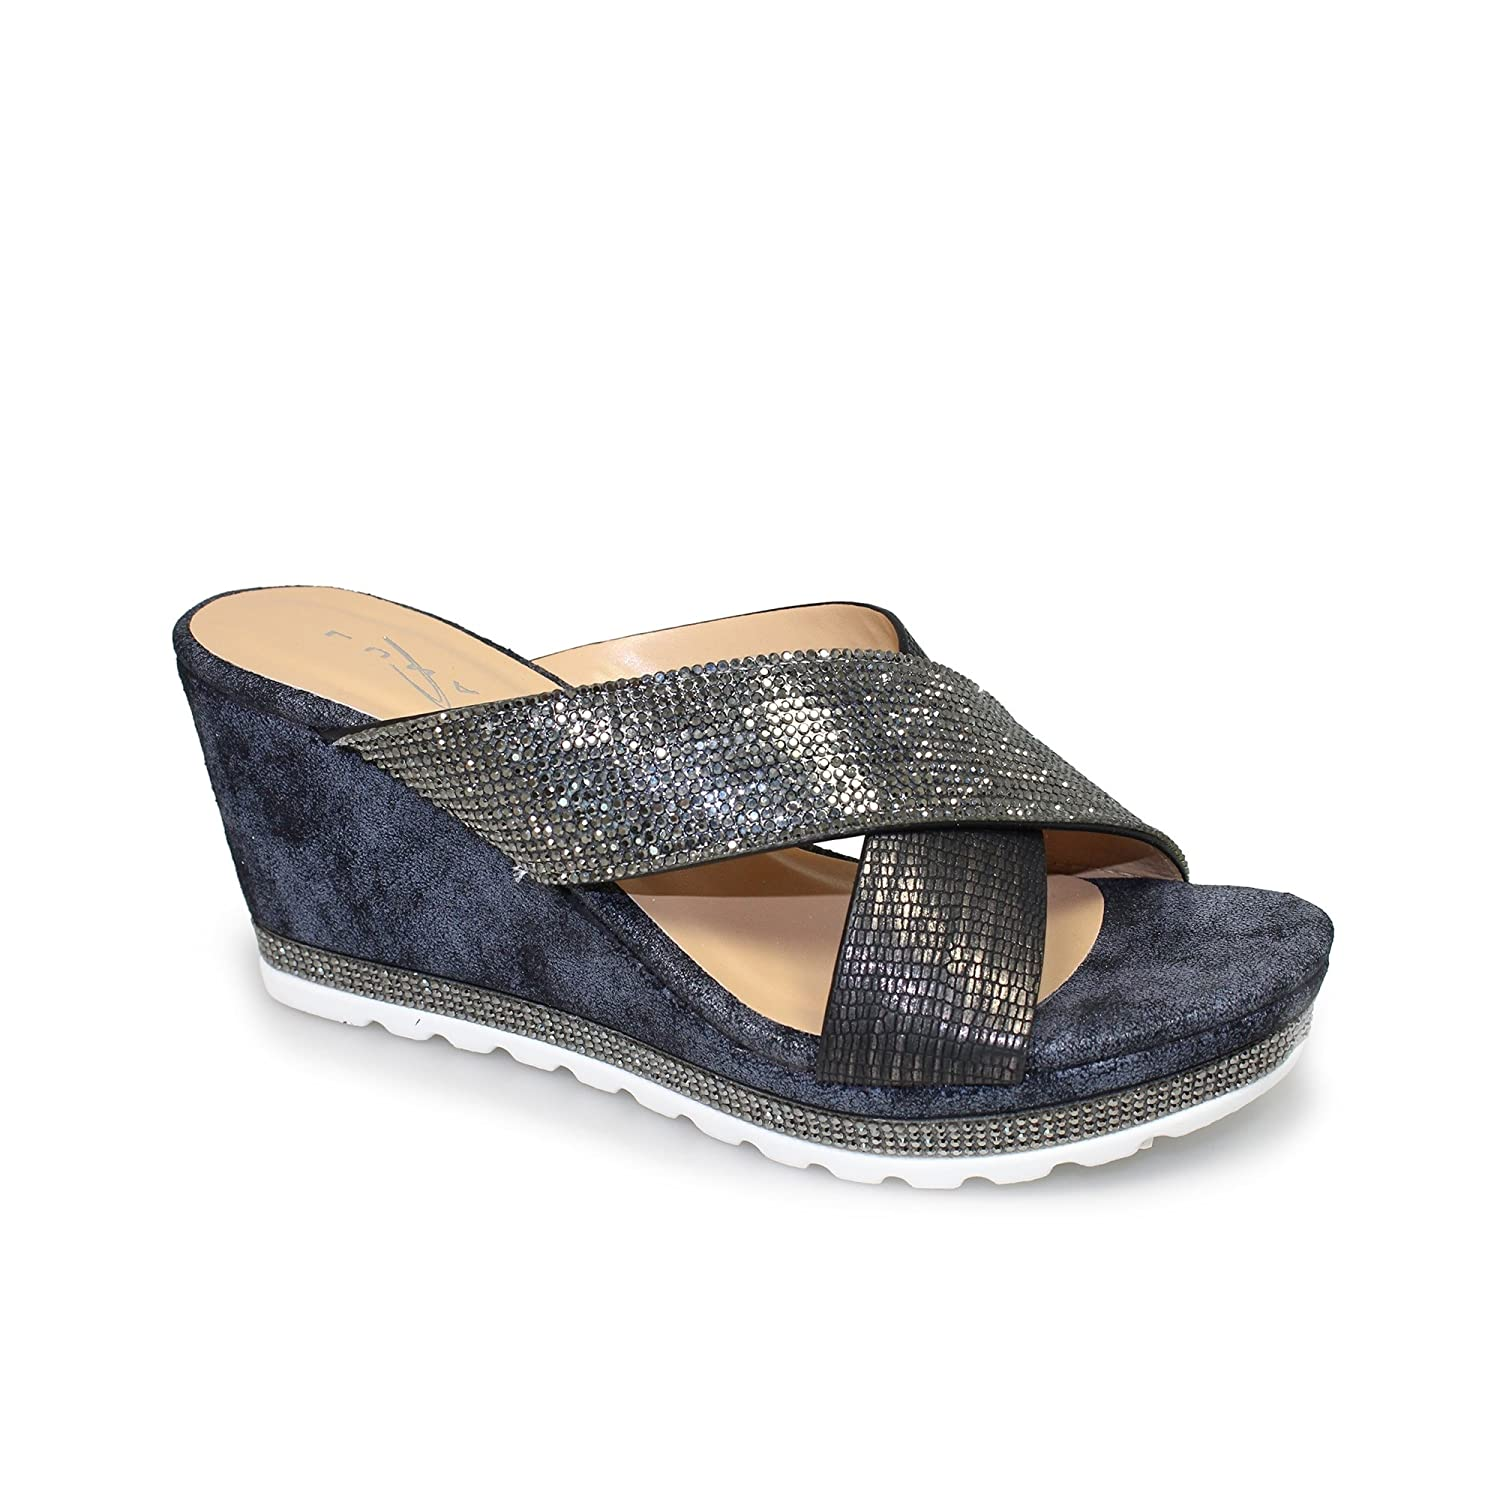 Black Gold Silver  Size 3 4 5 6 7 8 LADIES MULE Wedge Crossover Padded Sandals